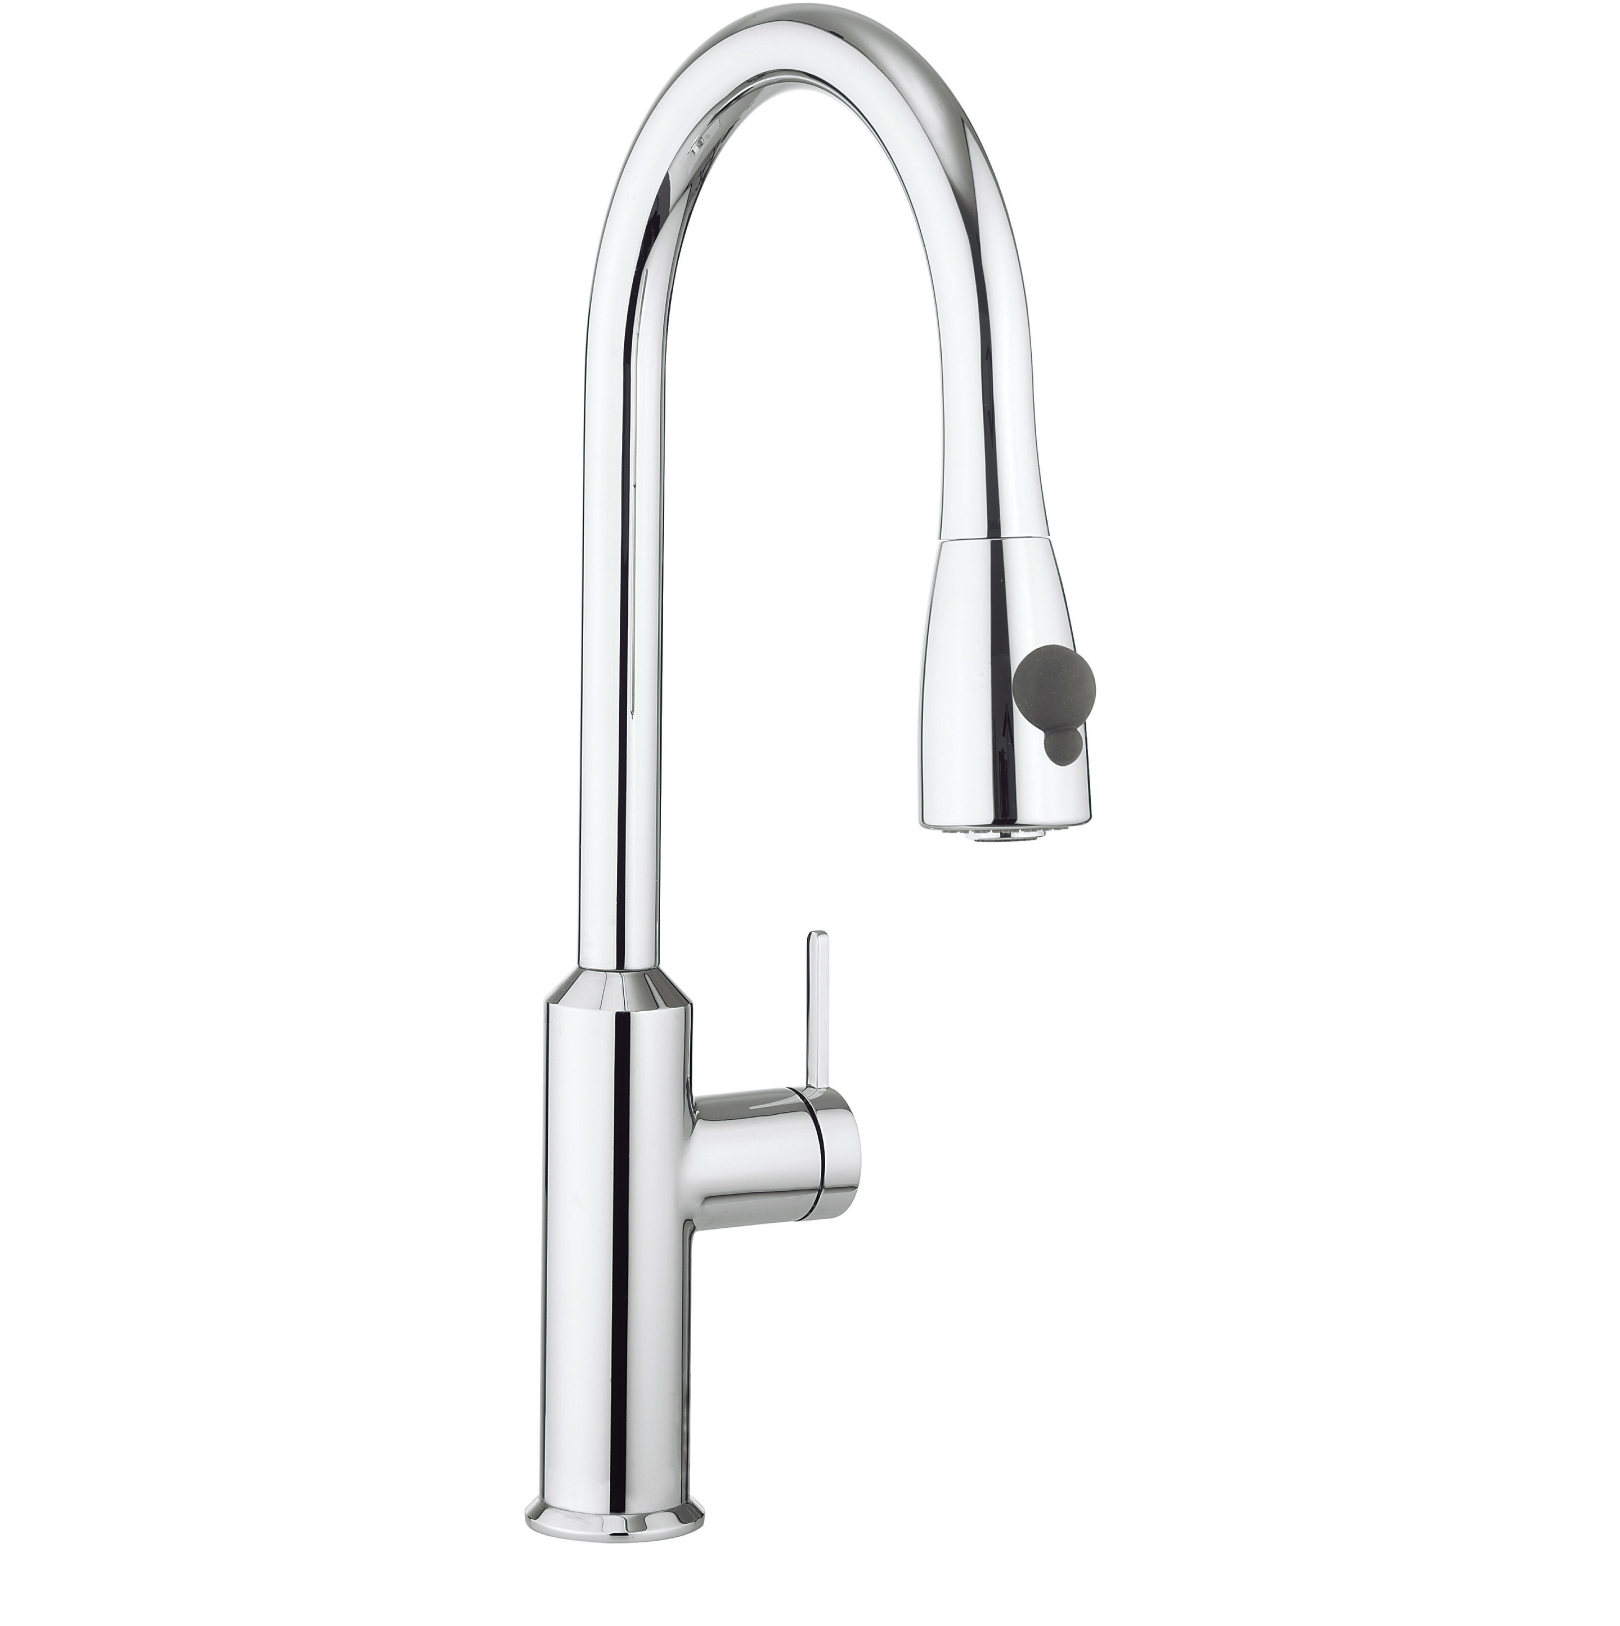 Crosswater cook side lever kitchen mixer with pull out spray co716dc - Luisina mixer ...